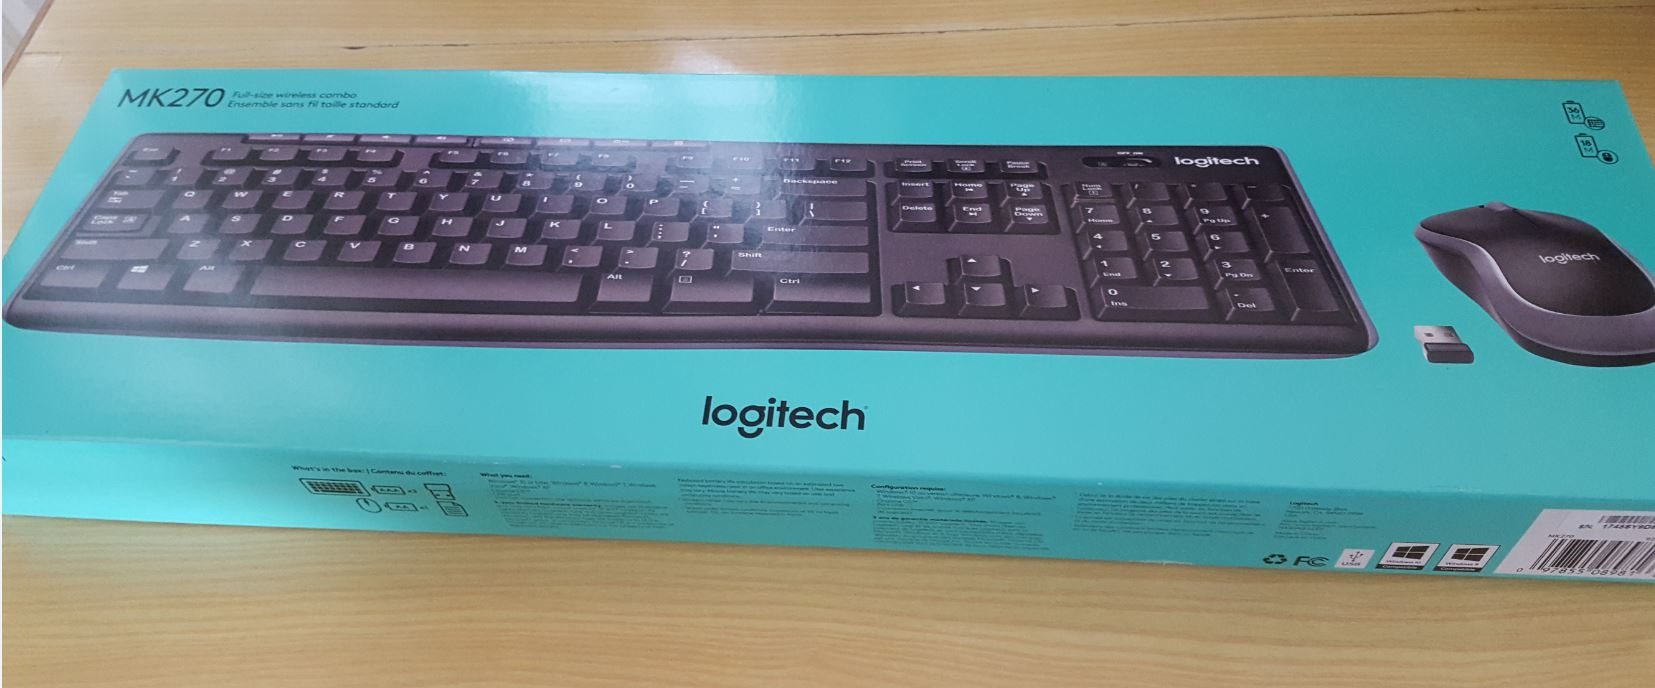 Logitech MK270 Wireless Keyboard and Mouse Combo Review - BlogTechTips 74bd935d0dbf9